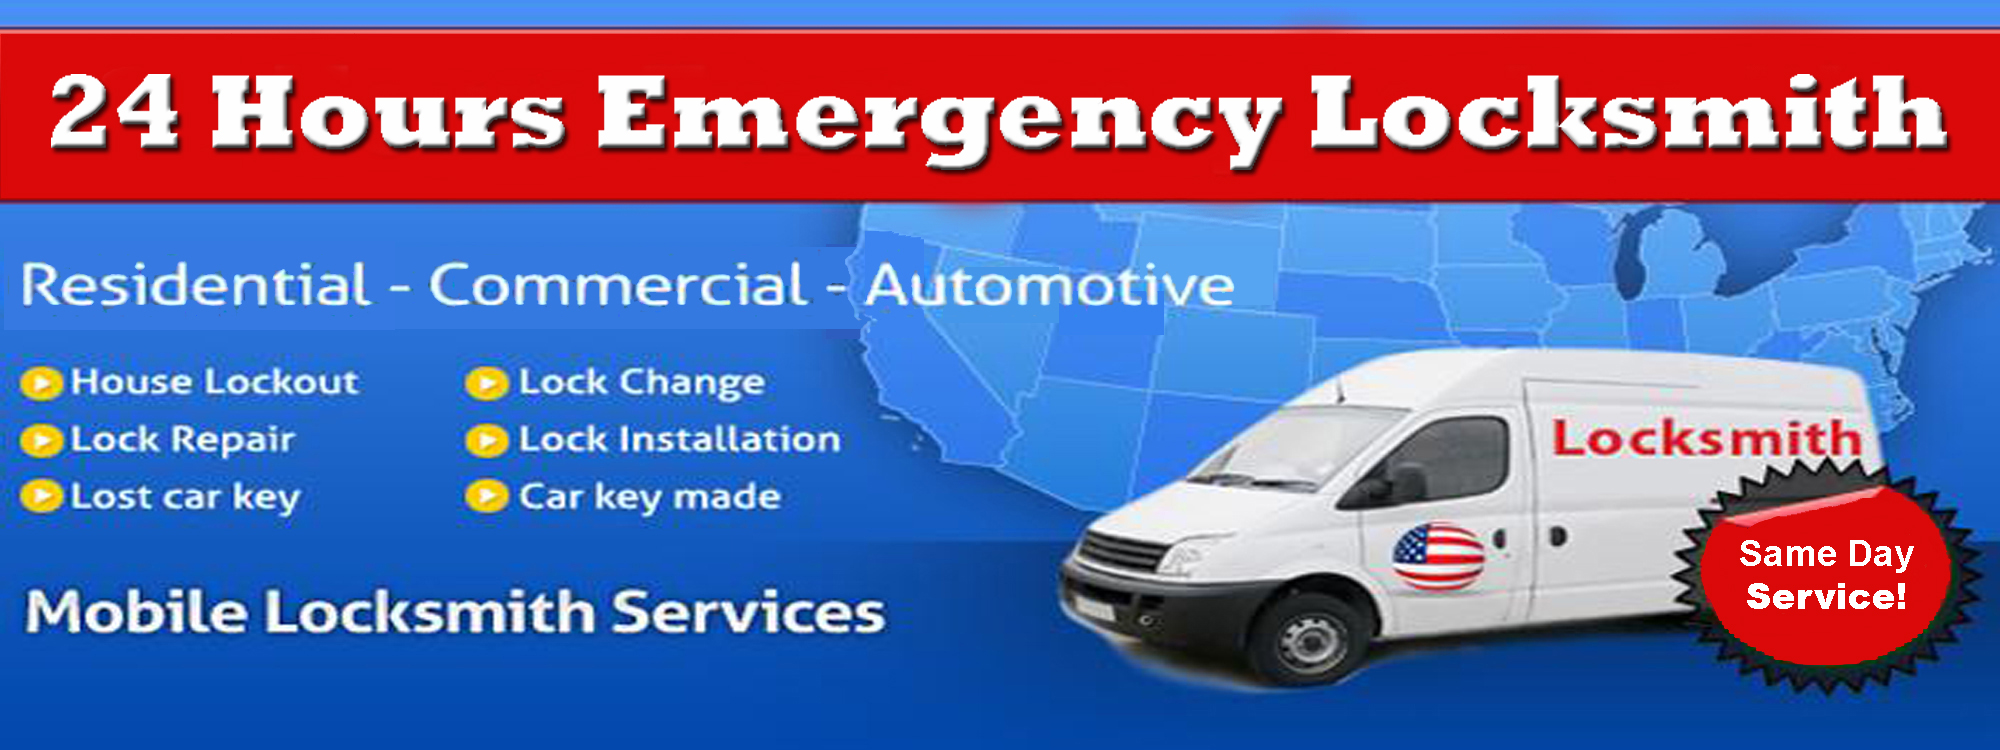 24 Hours Emergency Locksmith Slider